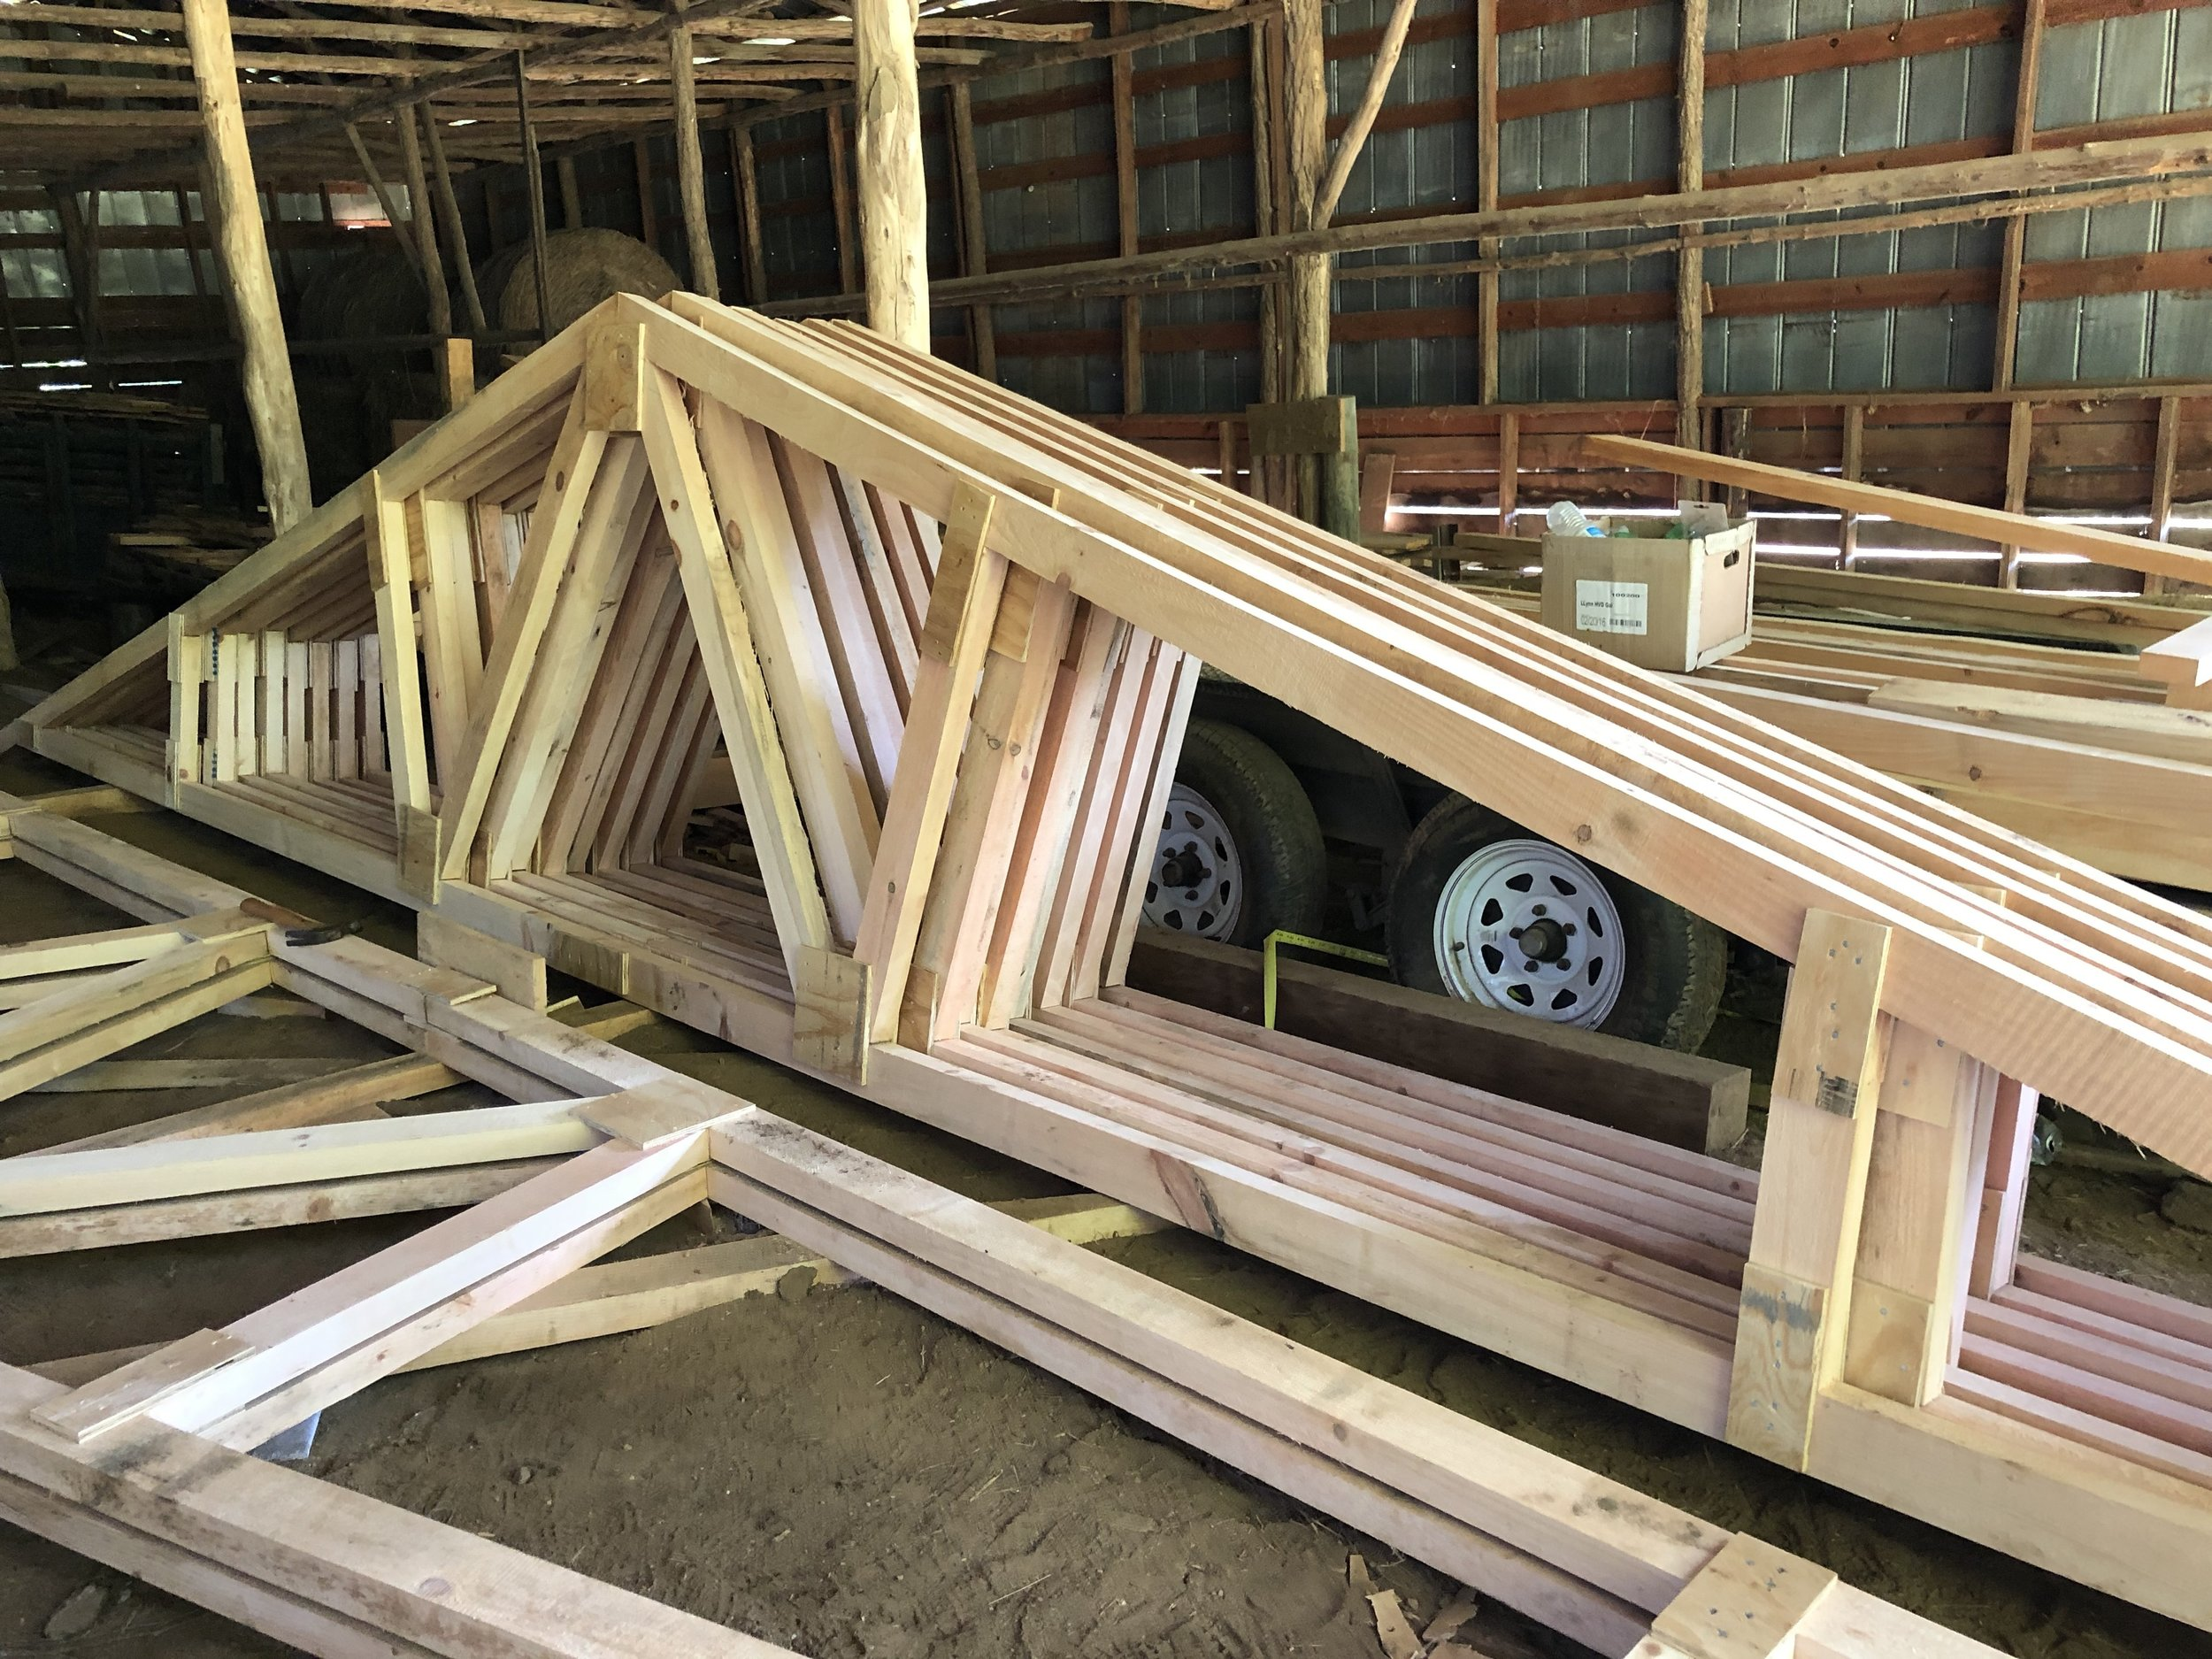 The first few roof trusses